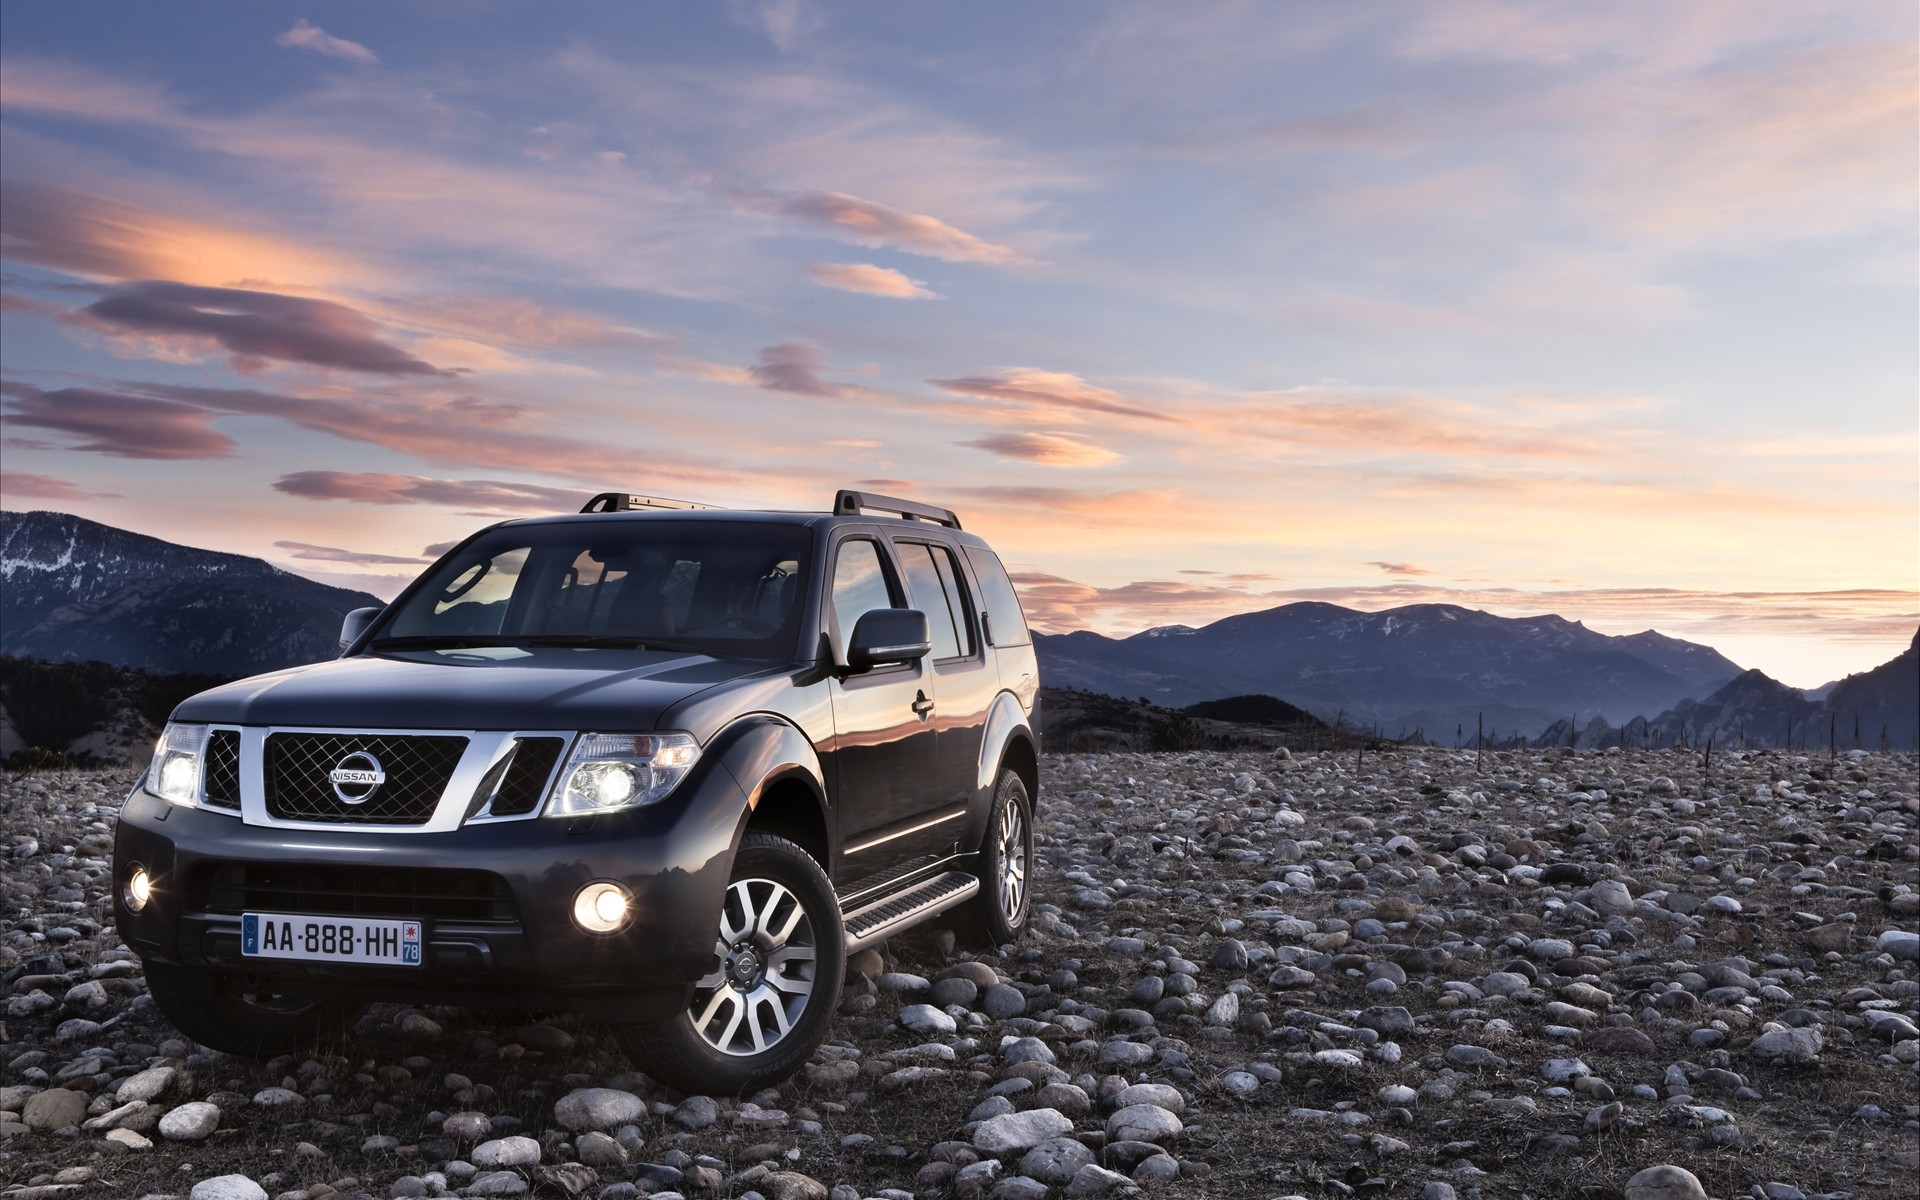 Download 2011 nissan pathfinder and navara   Cars wallpapers for 1920x1200